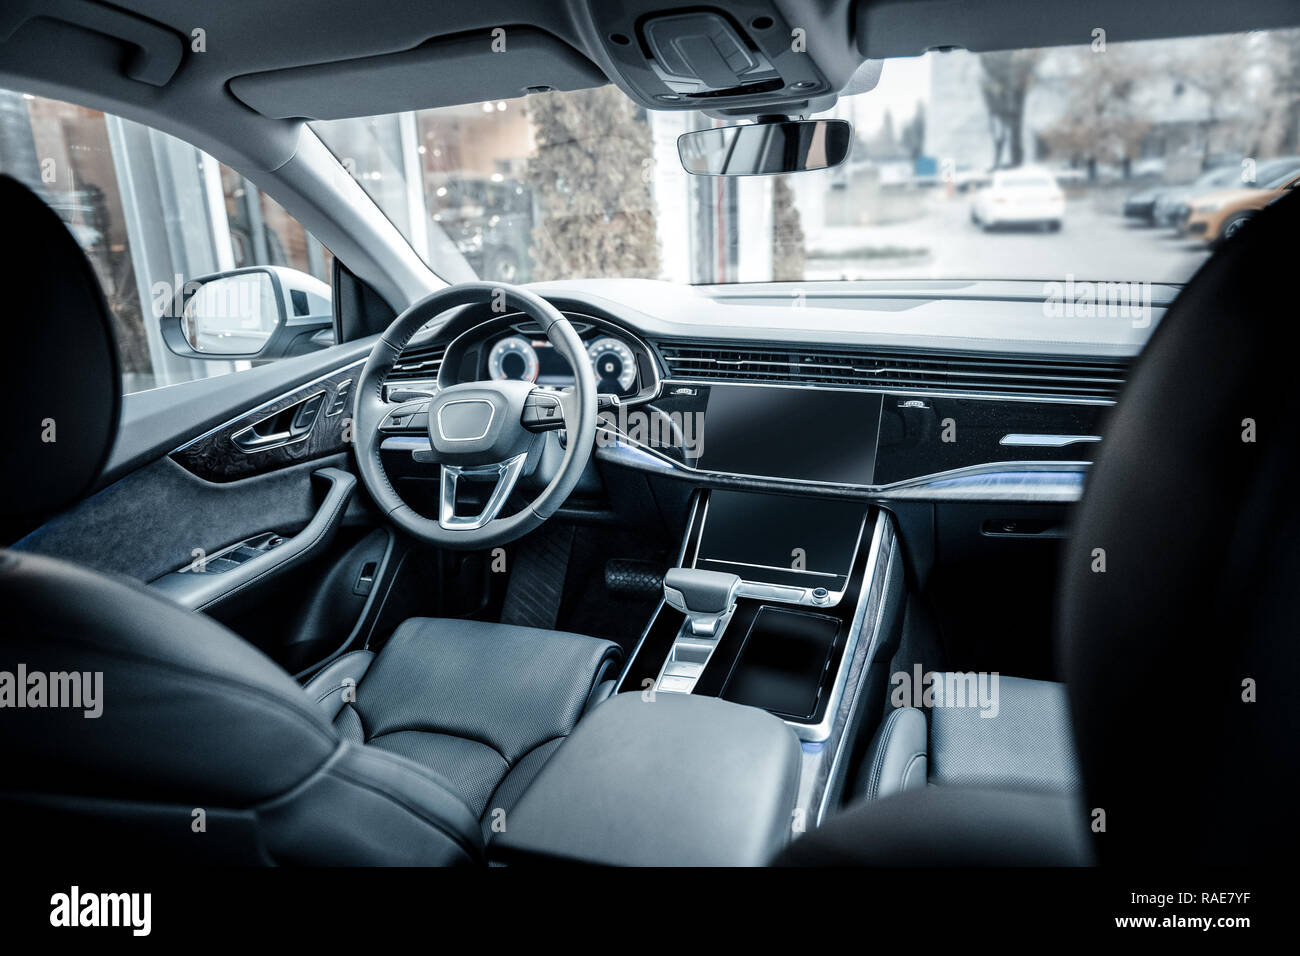 Nice spacious car with leather interior and automatic transmission - Stock Image